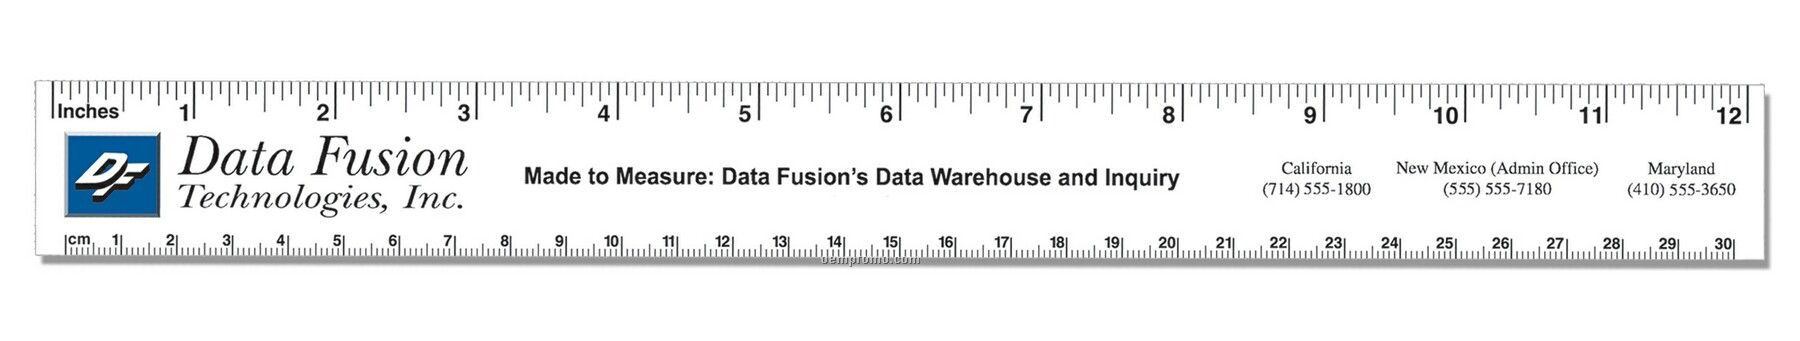 6 inch scale ruler  eBay